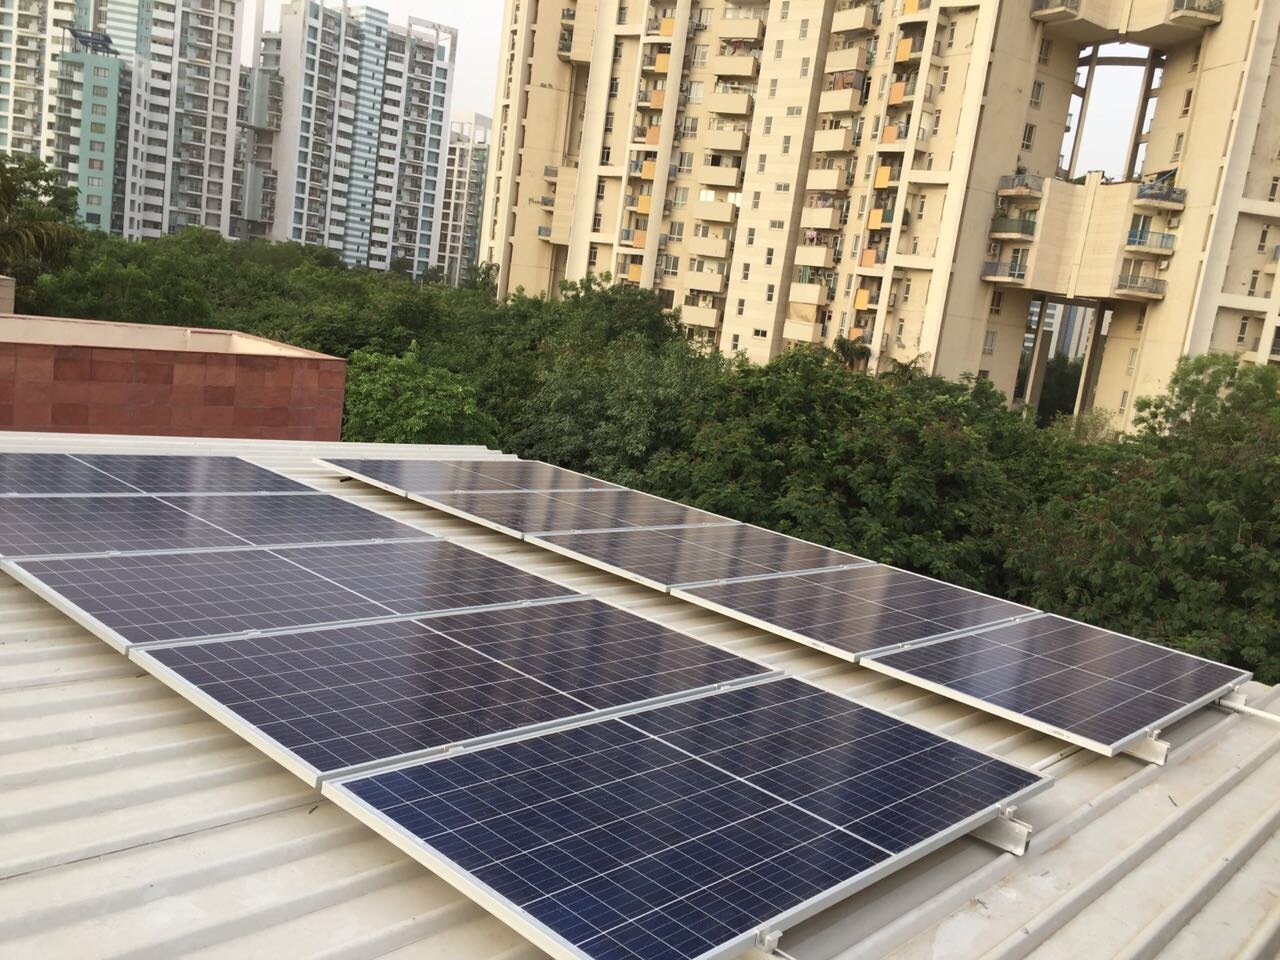 7 Things to Consider Before Going for a Solar Rooftop System for your Home